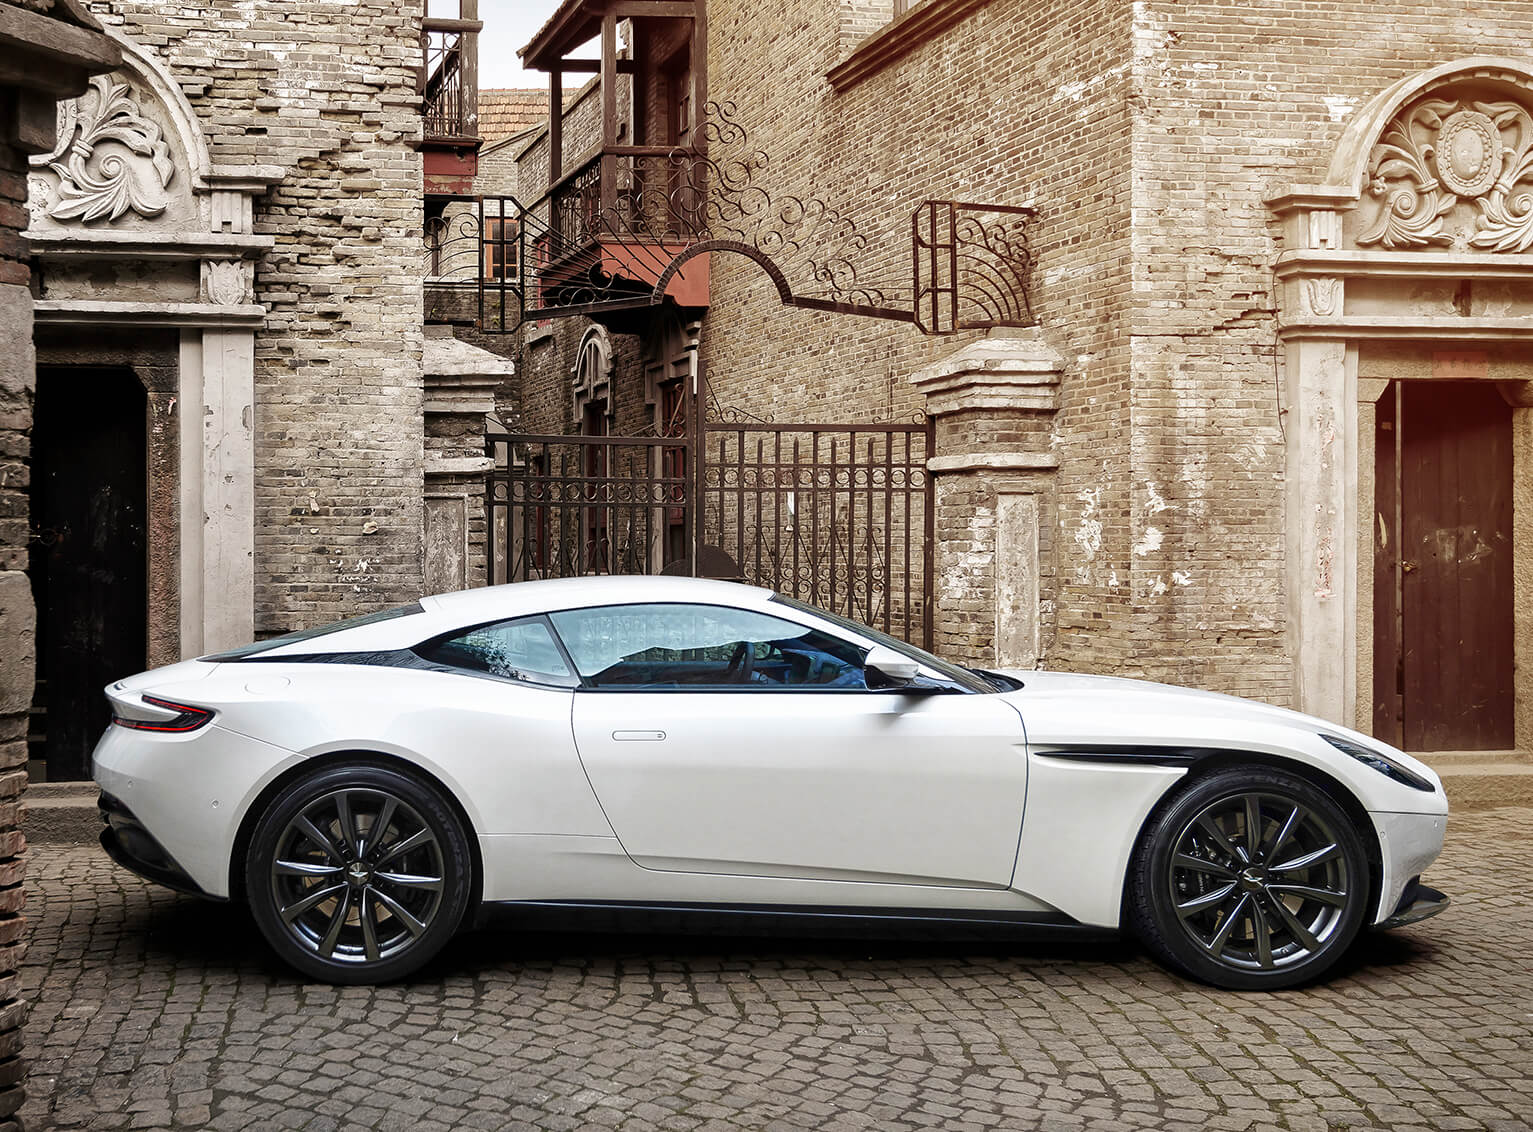 V8-Powered_DB11_09_4226.jpg